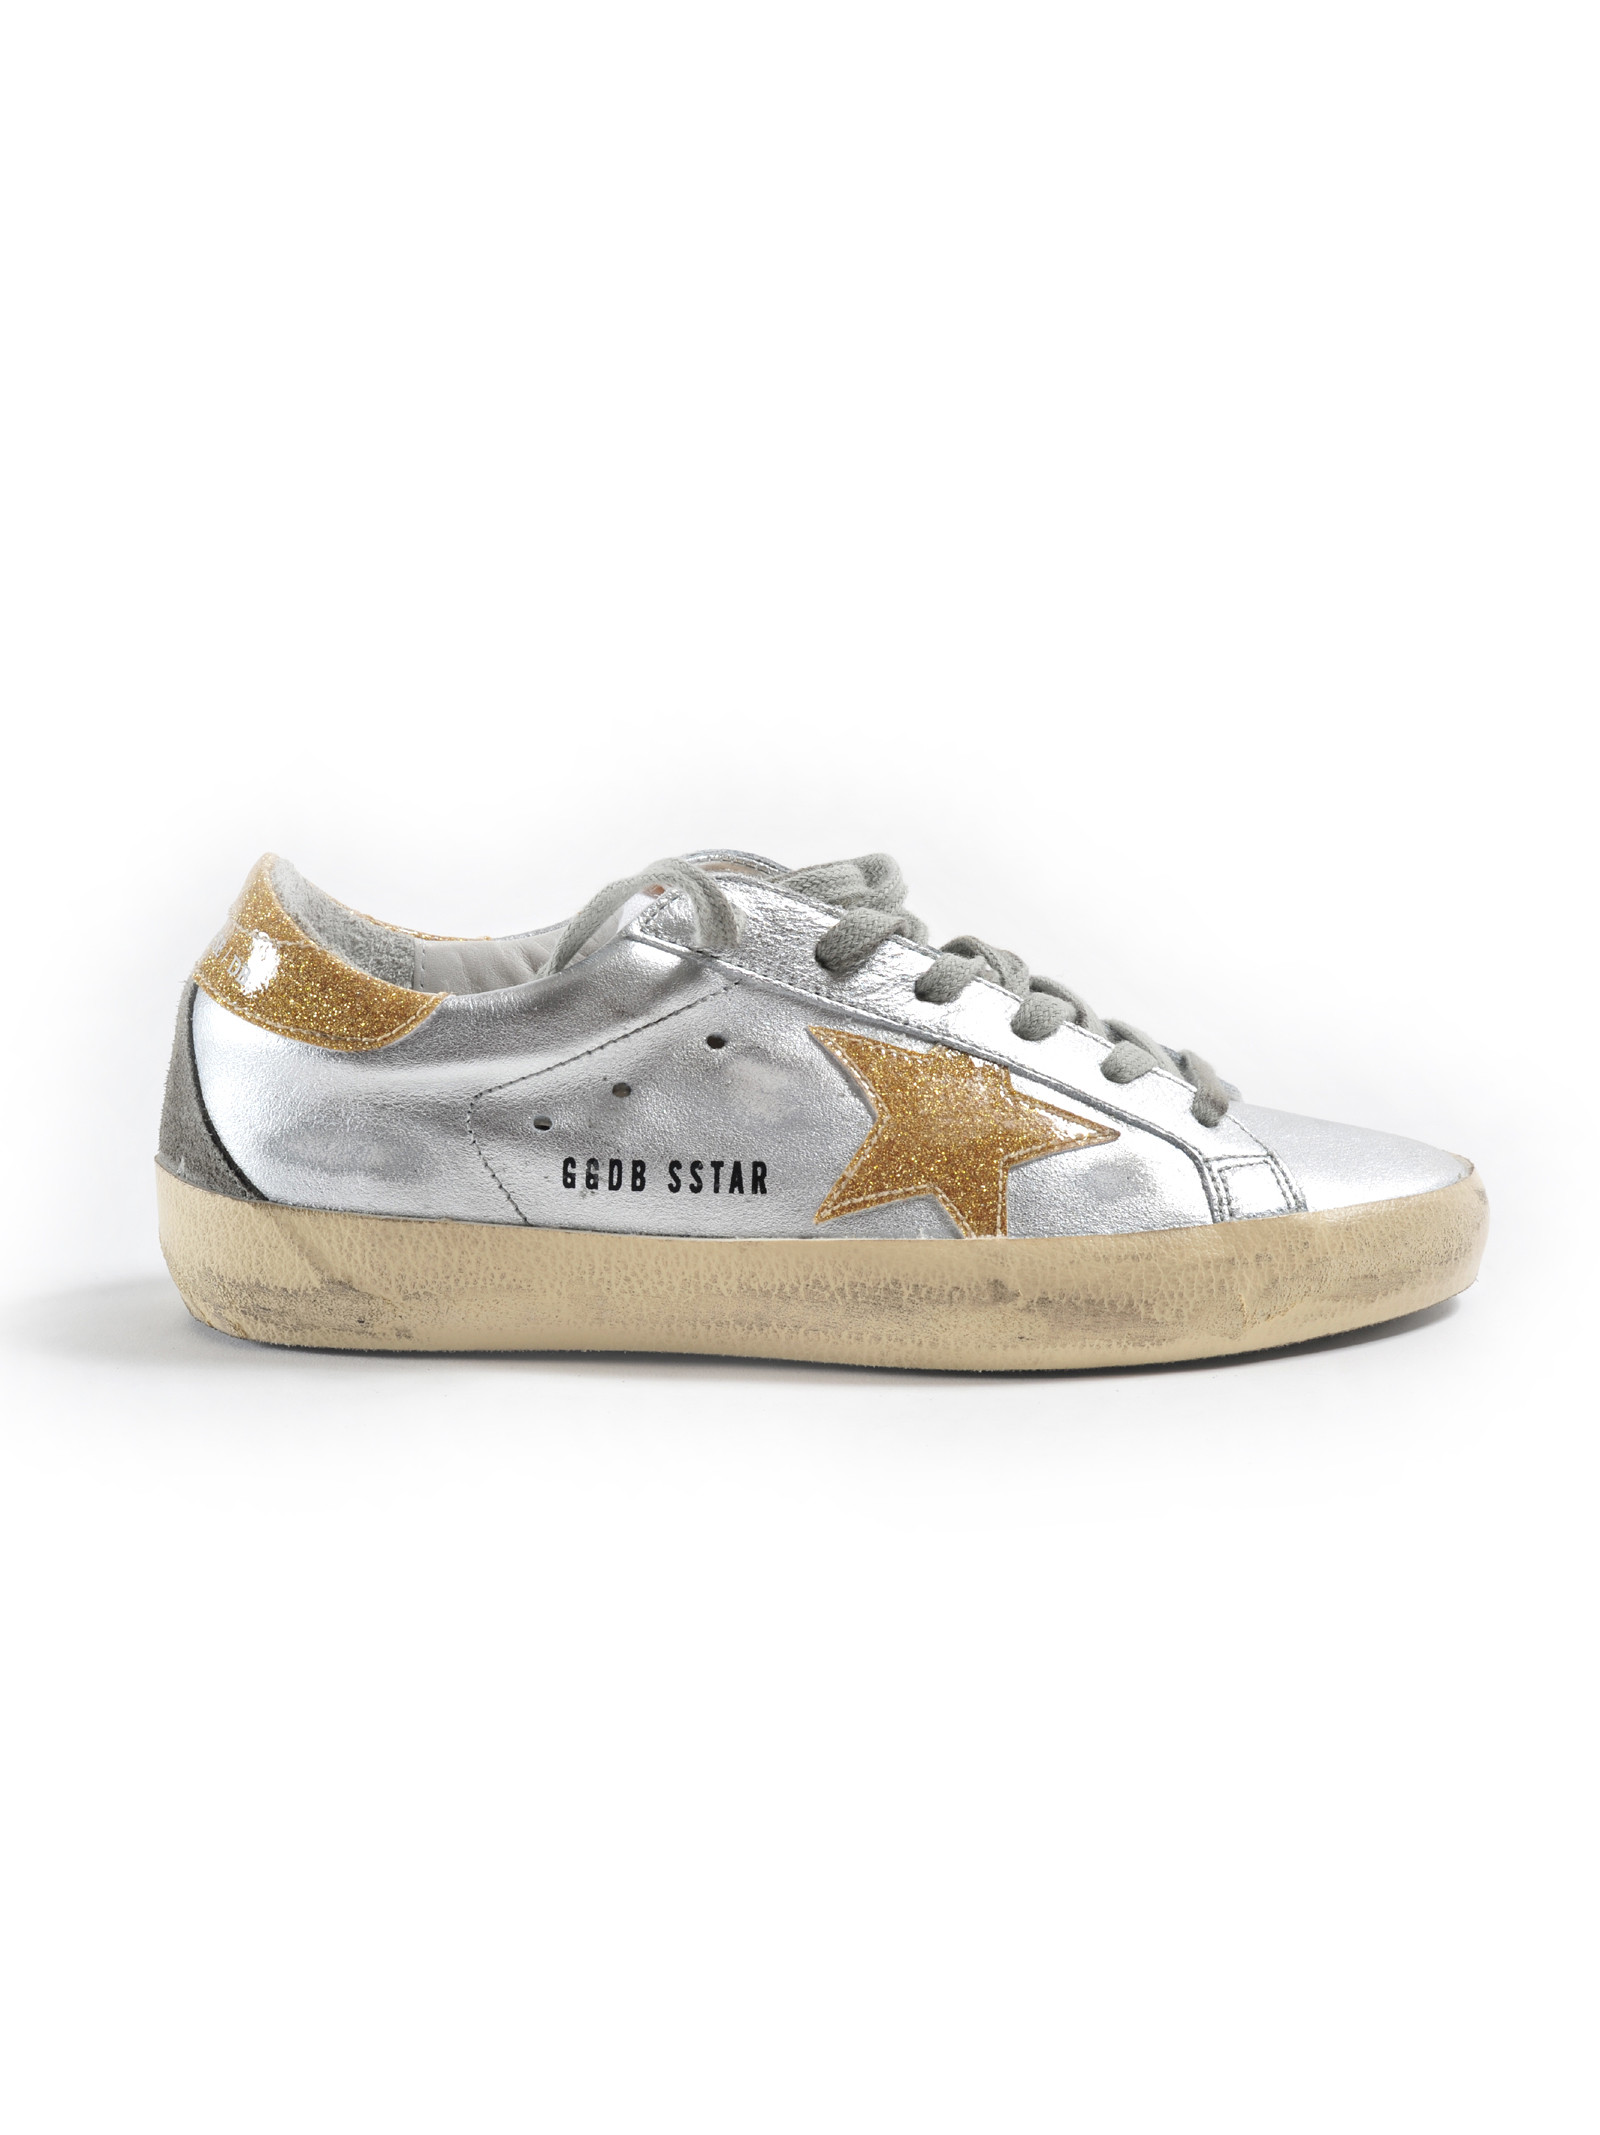 Golden Goose - Golden Goose Super Star Leather Sneakers, Women's Sneakers | Italist